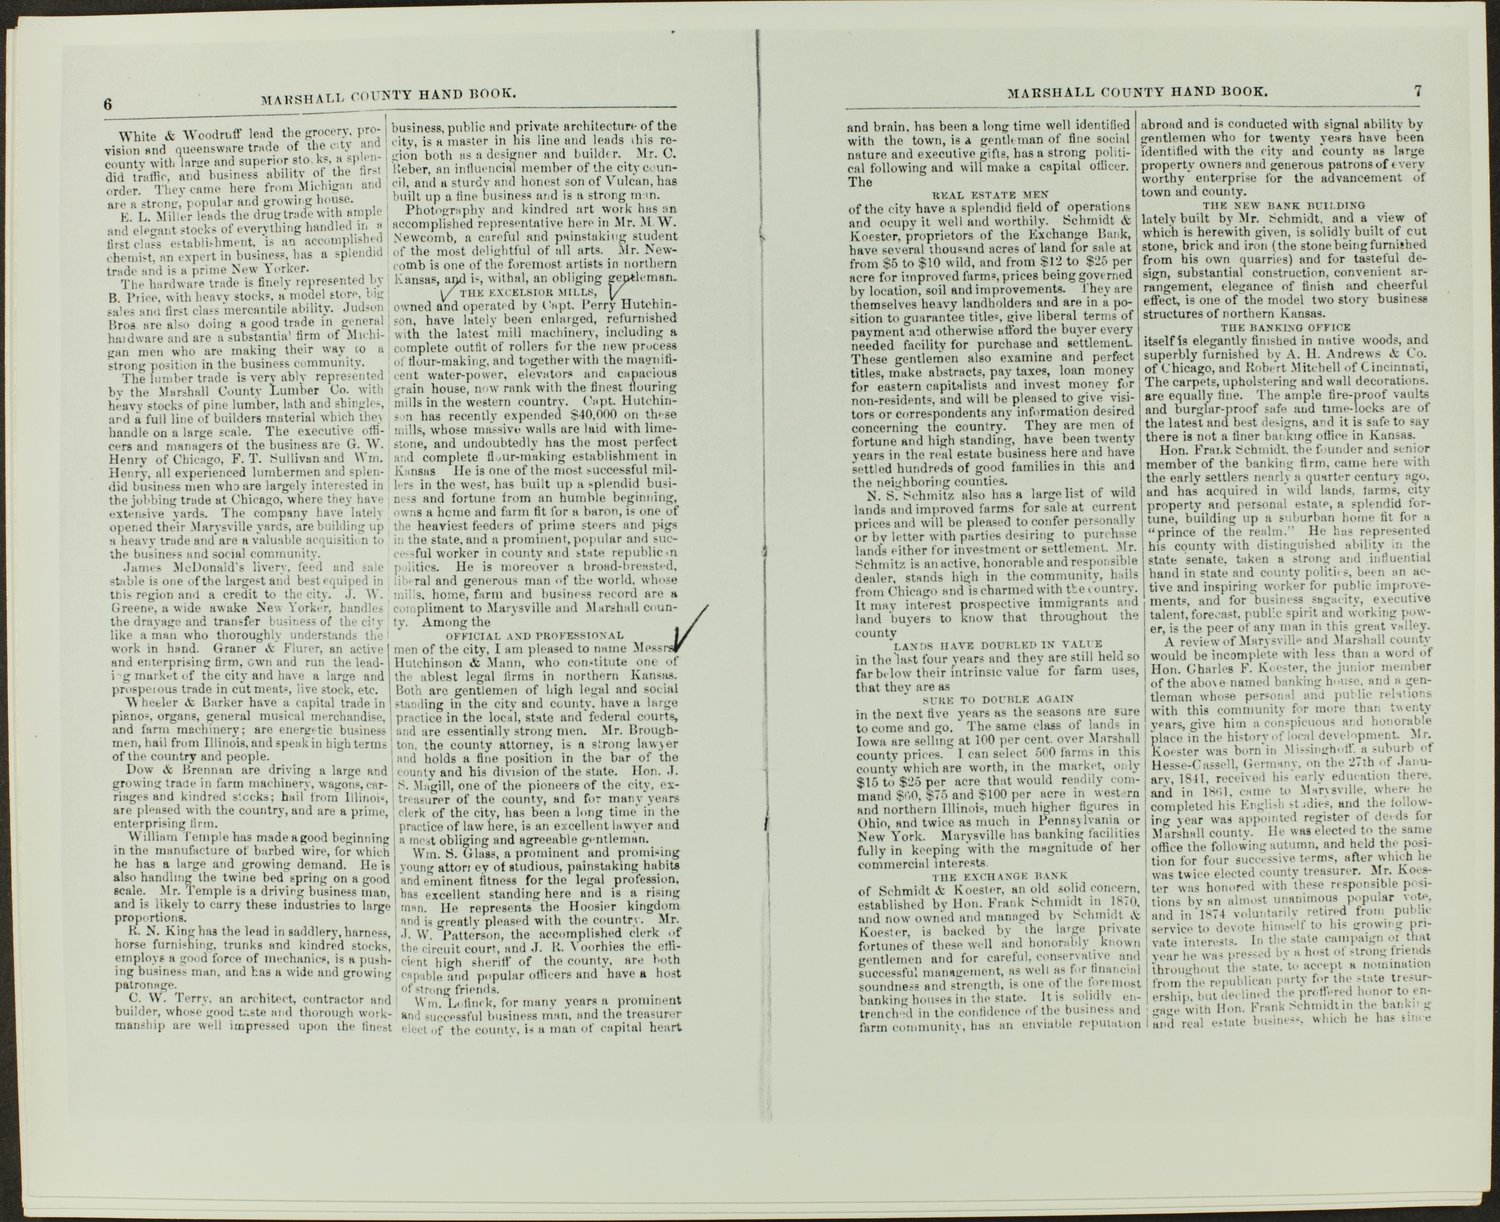 Handbook of Marshall County, Kansas - Pages 6 & 7